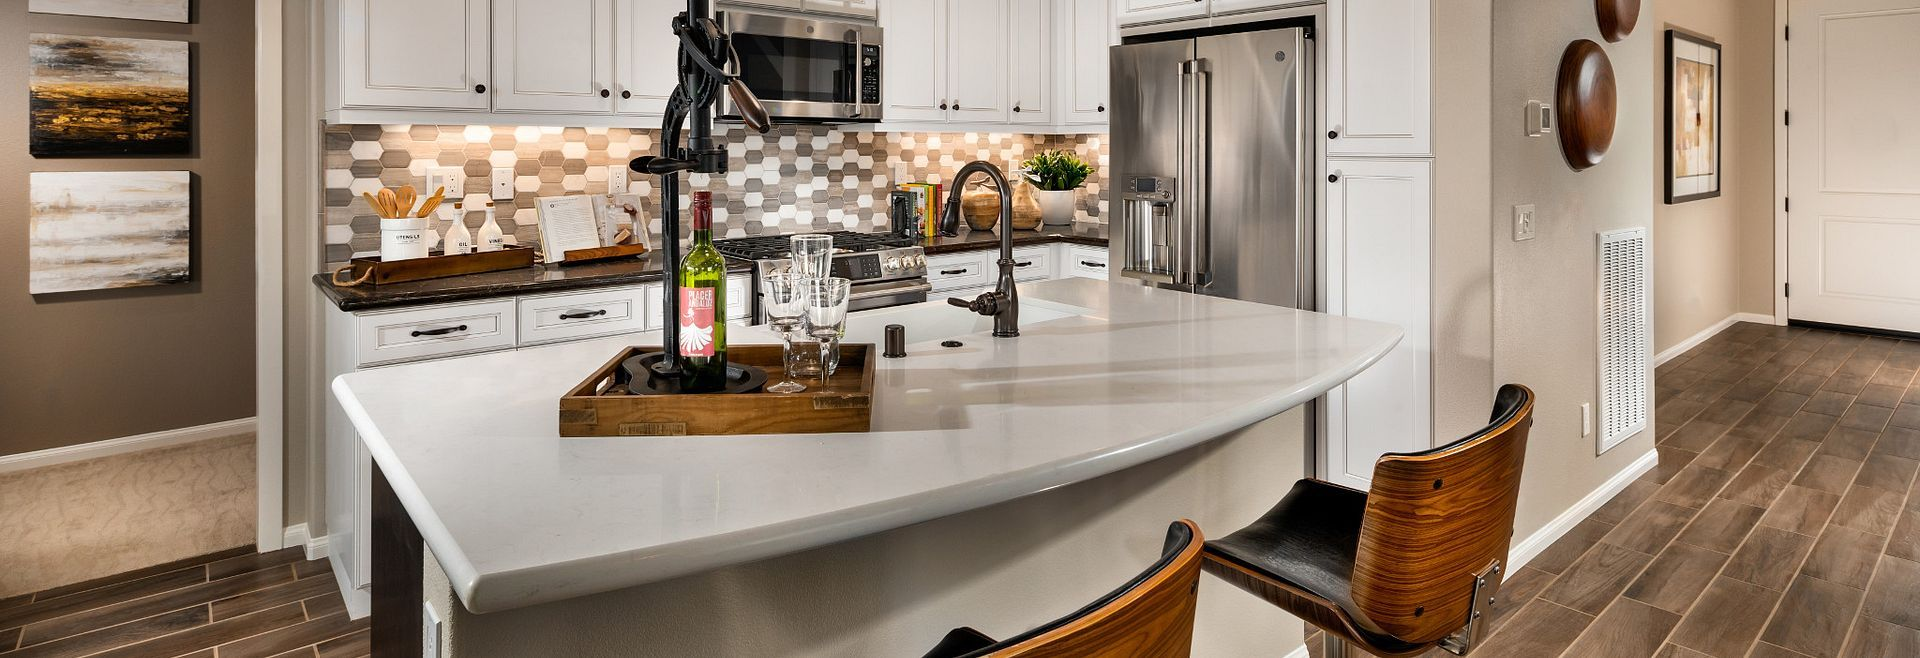 Kitchen featured in the Muros By Shea Homes - Trilogy in Phoenix-Mesa, AZ